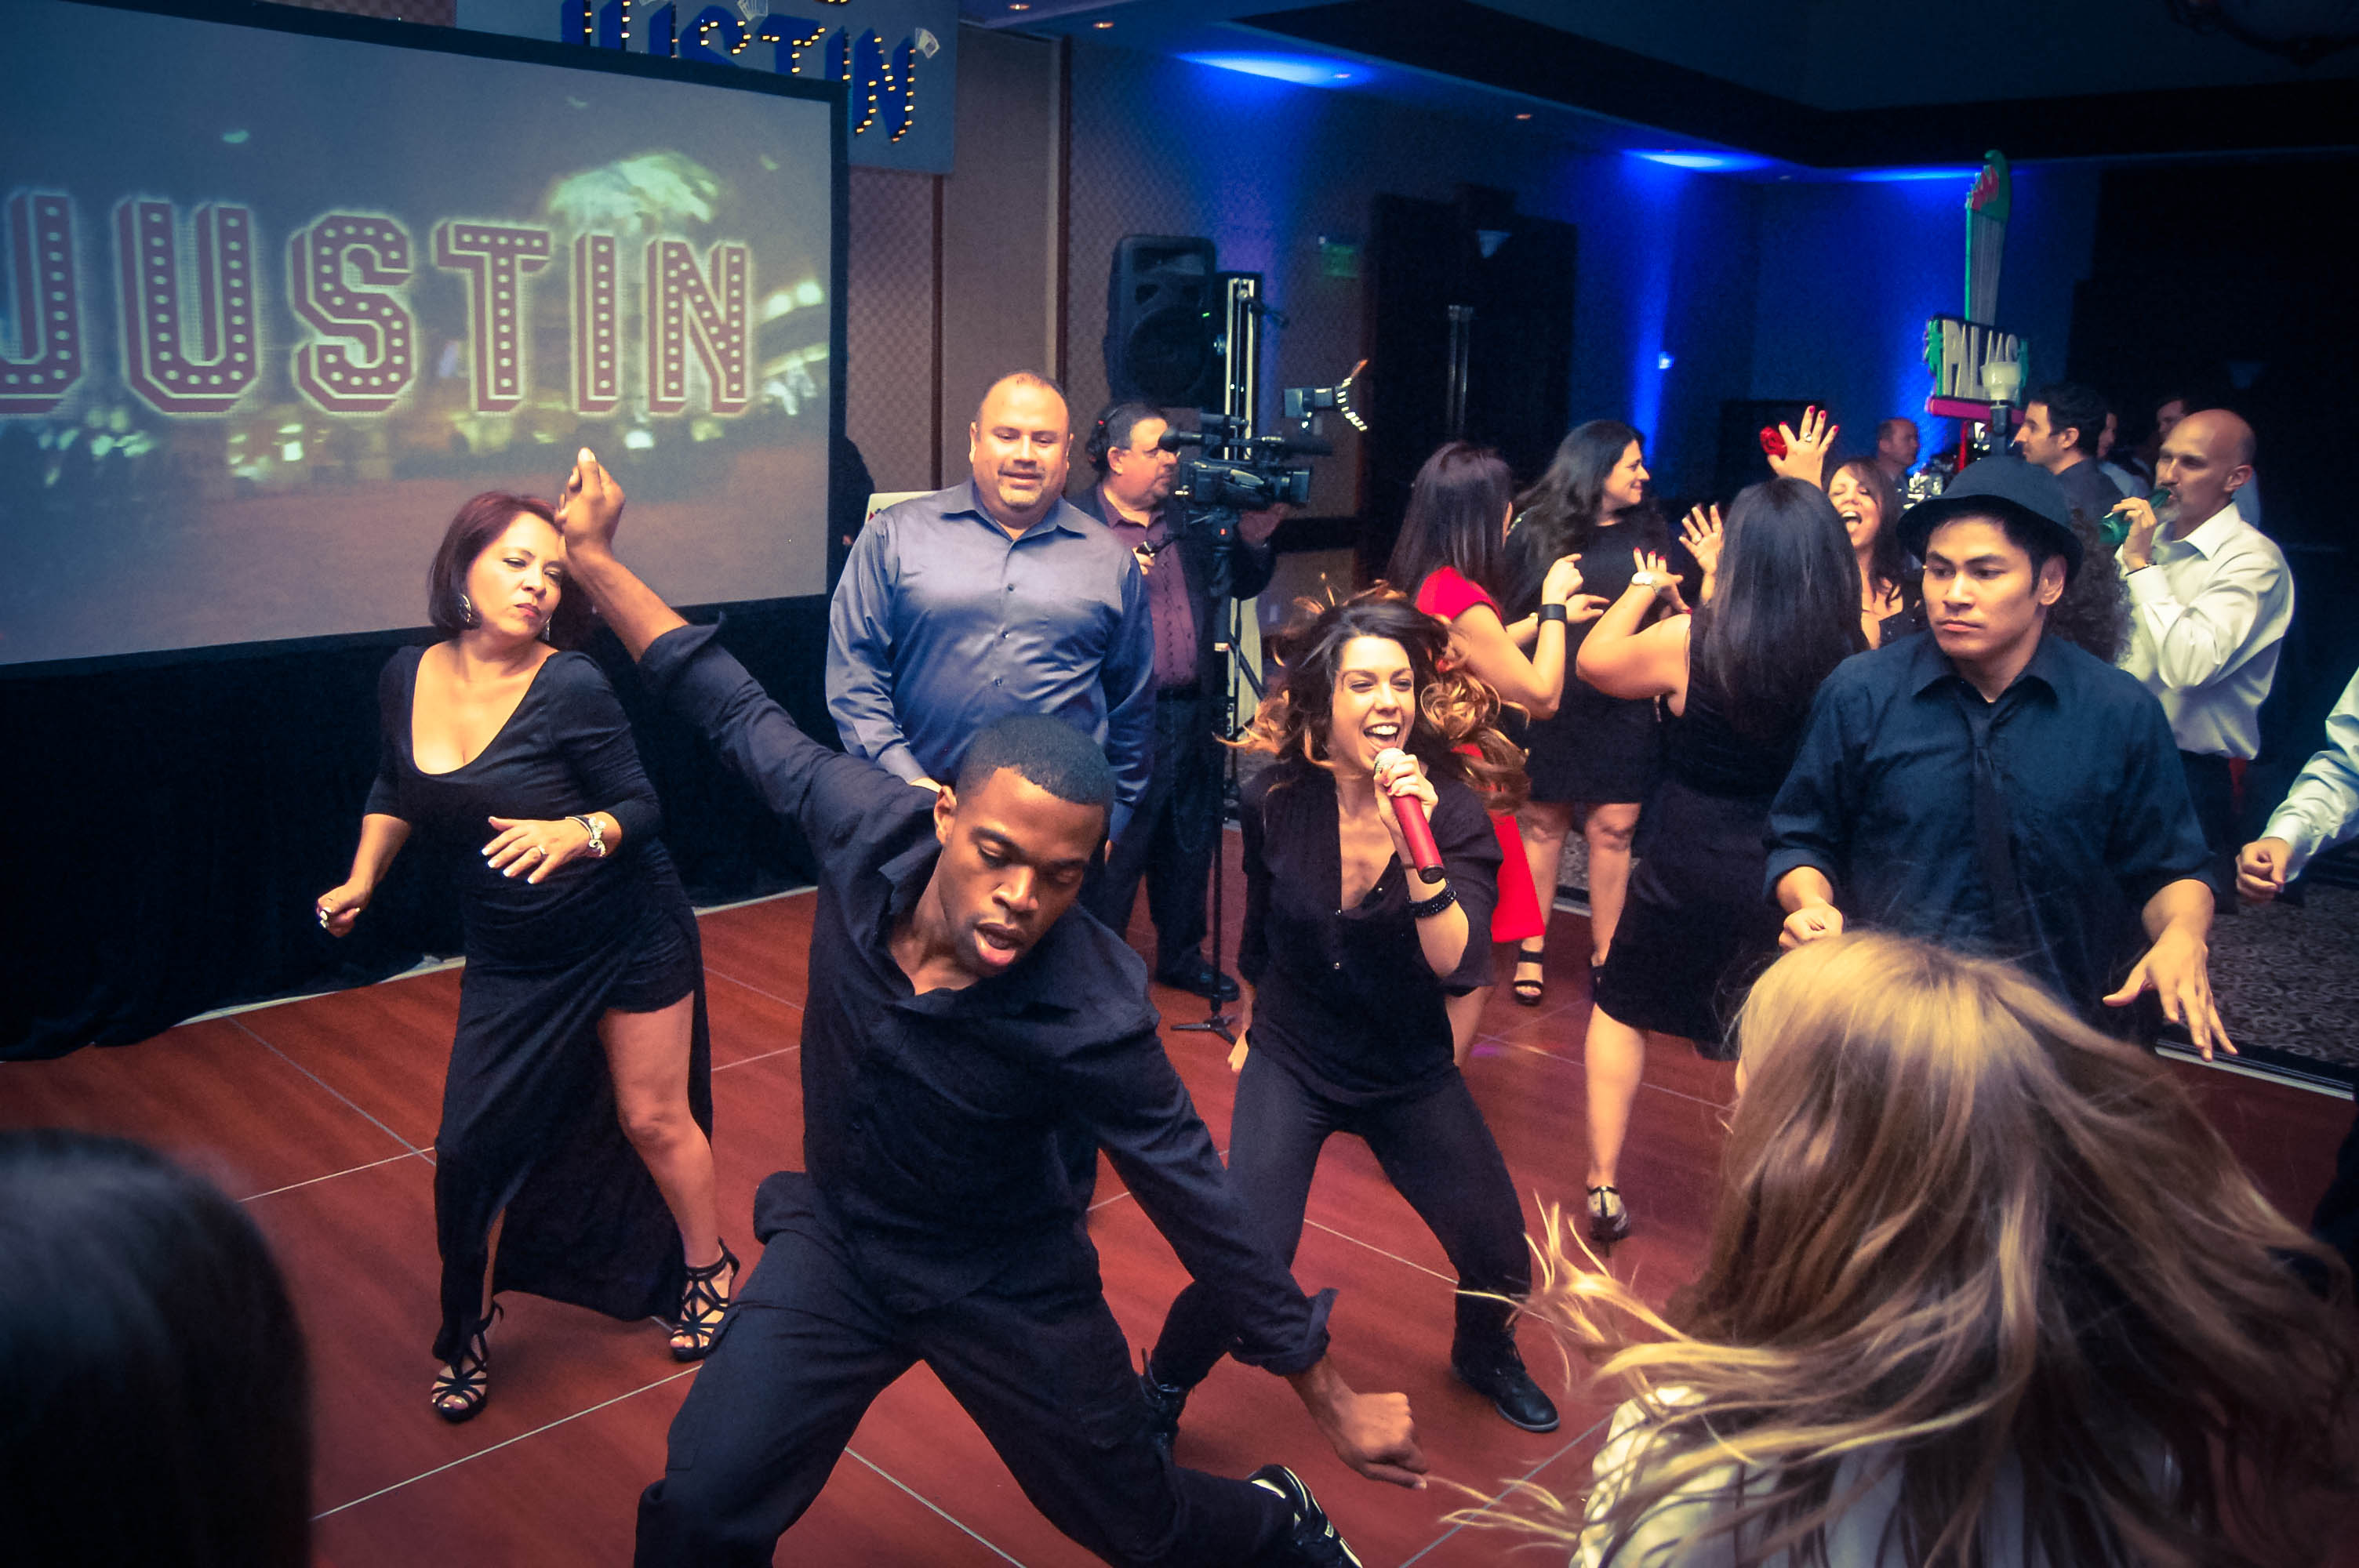 Los Angeles Bar Mitzvah and Los Angeles Bat Mitzvah DJ Celebrations. The best Los Angeles Mitzvah DJs.